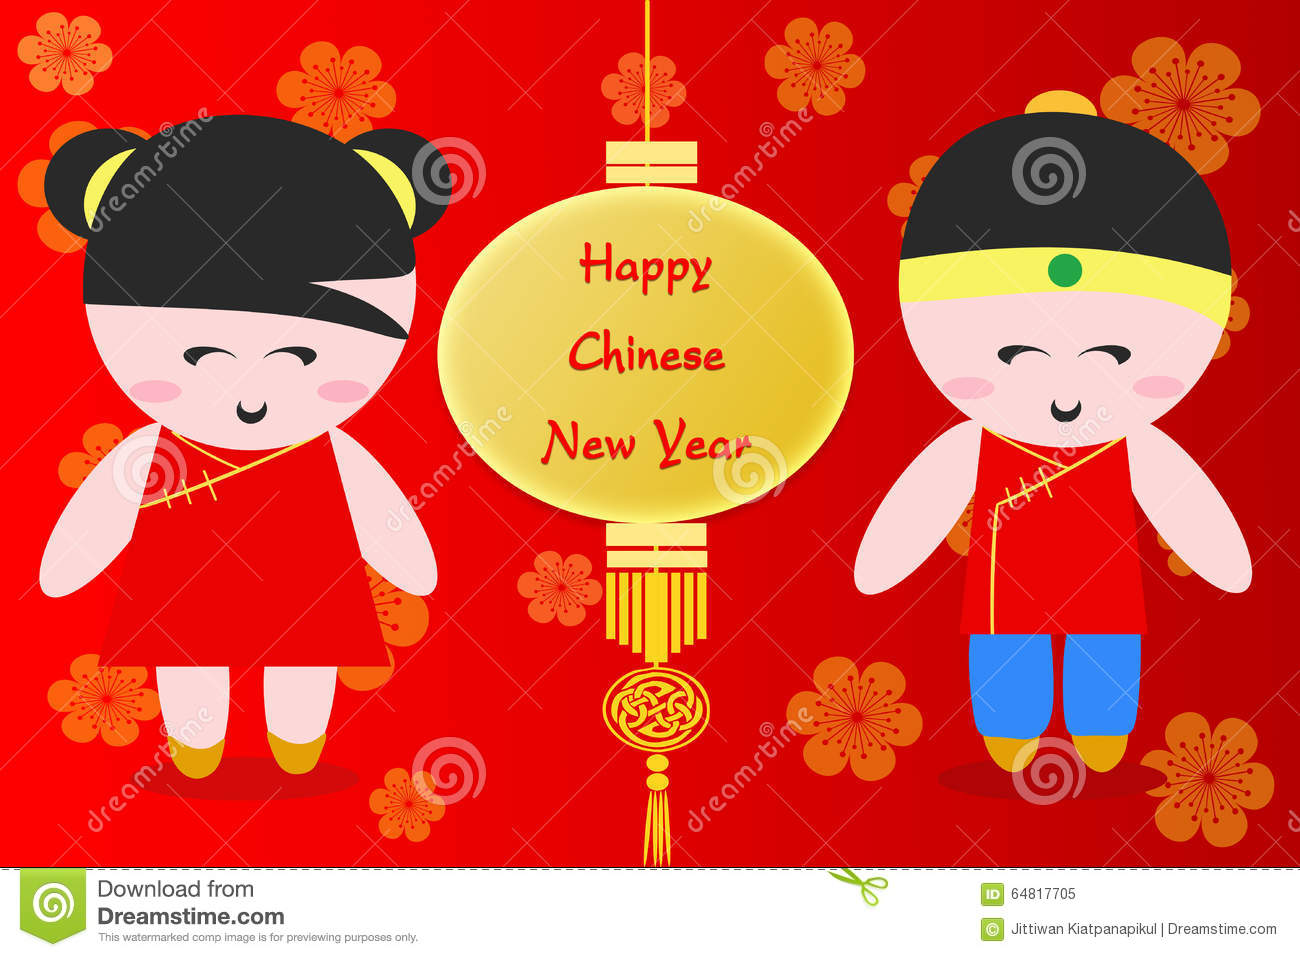 happy chinese new year greeting cartoon background